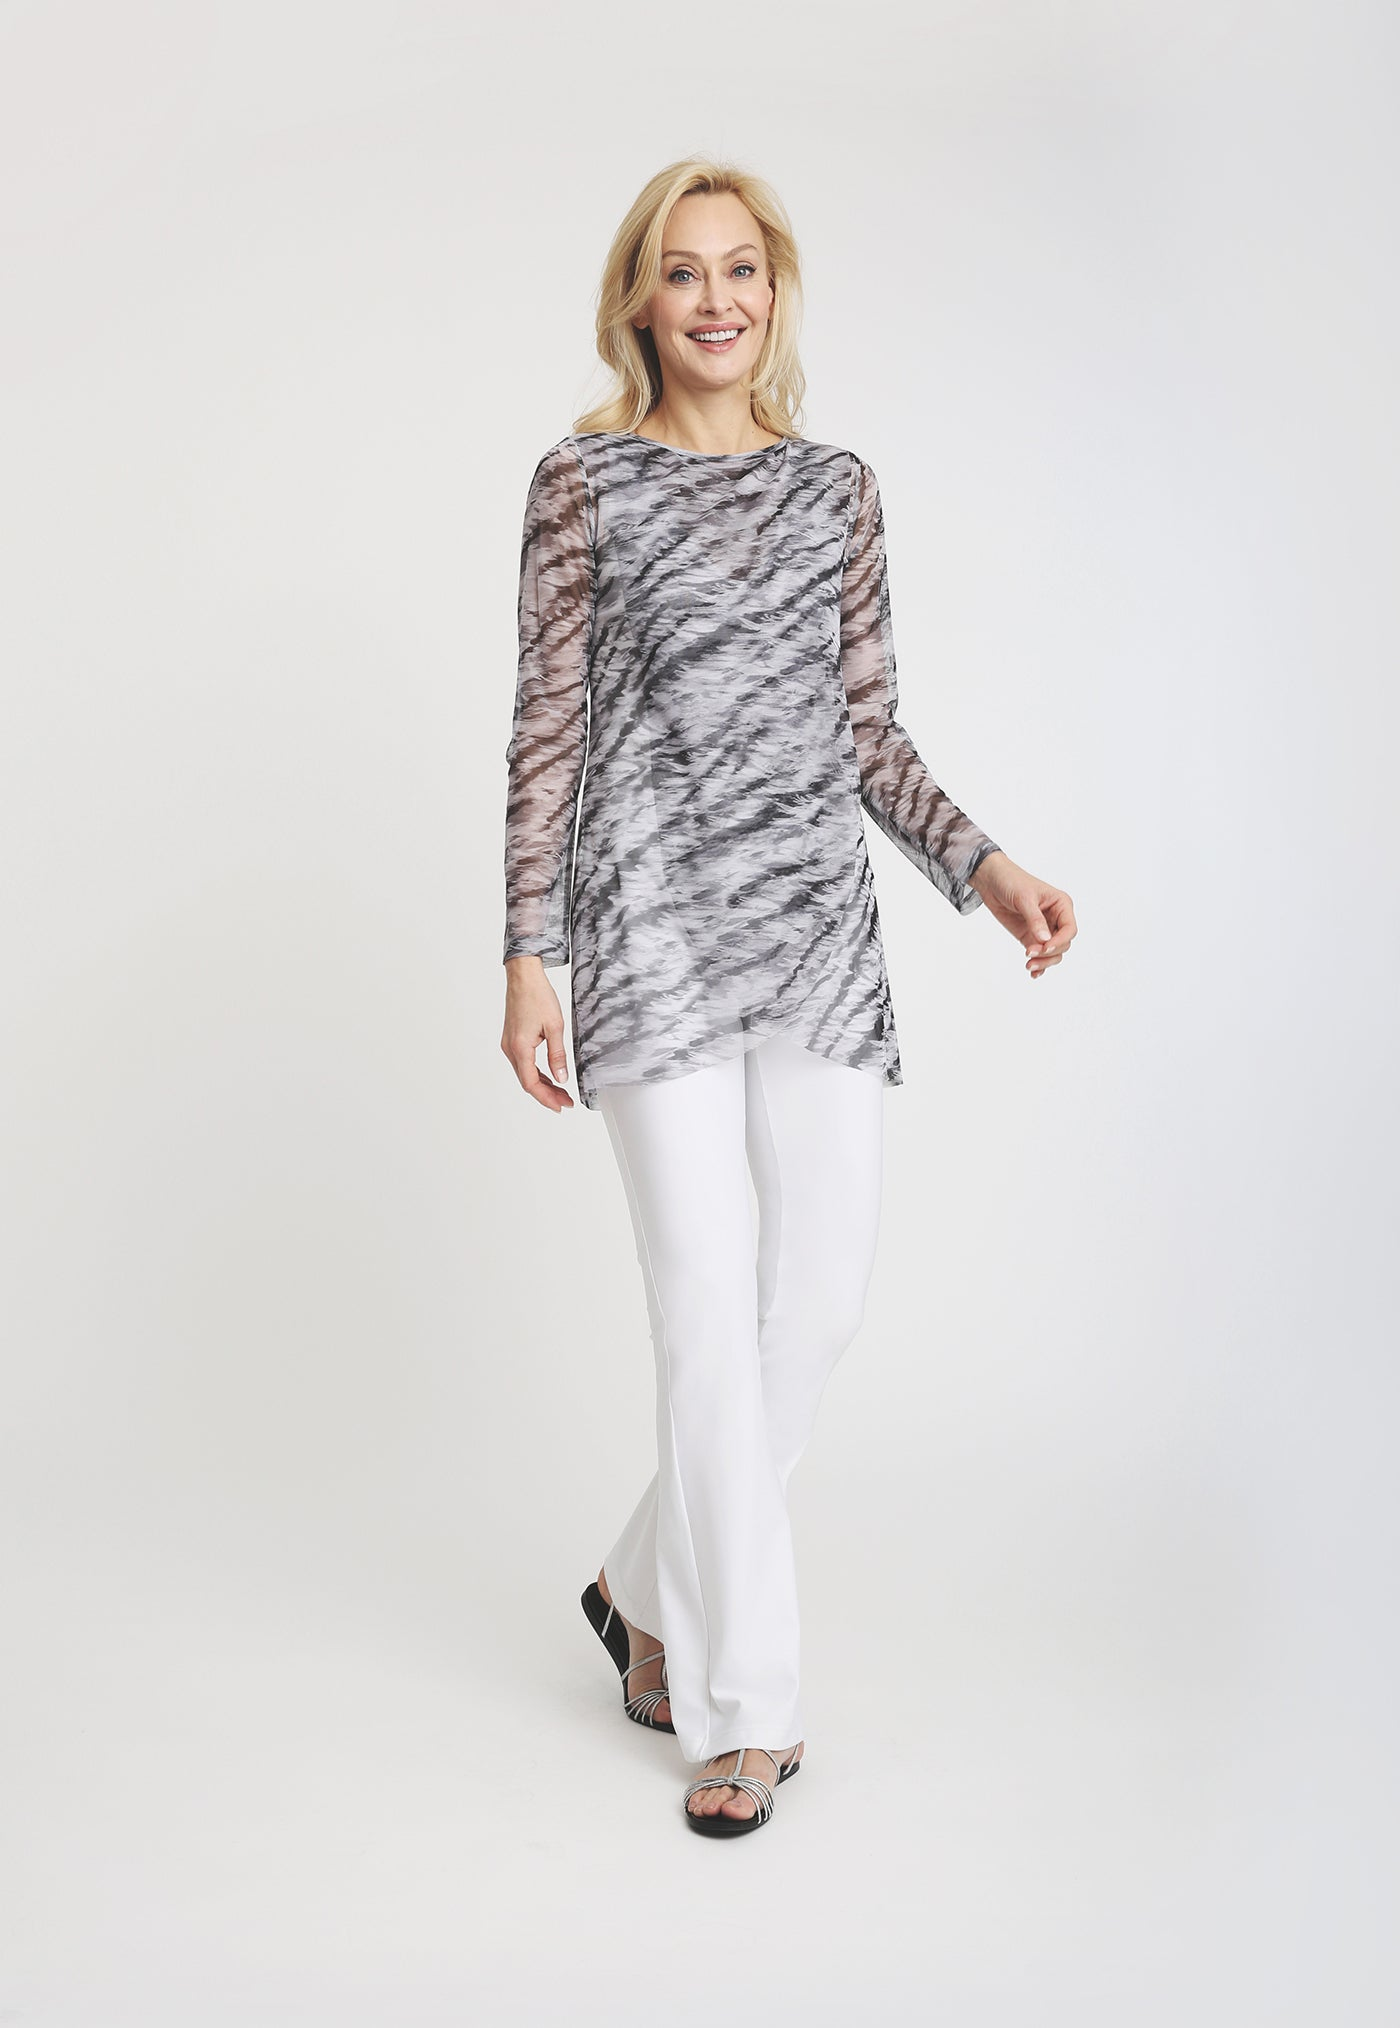 Long sleeve mesh drape top with black and white tiger print and white pant